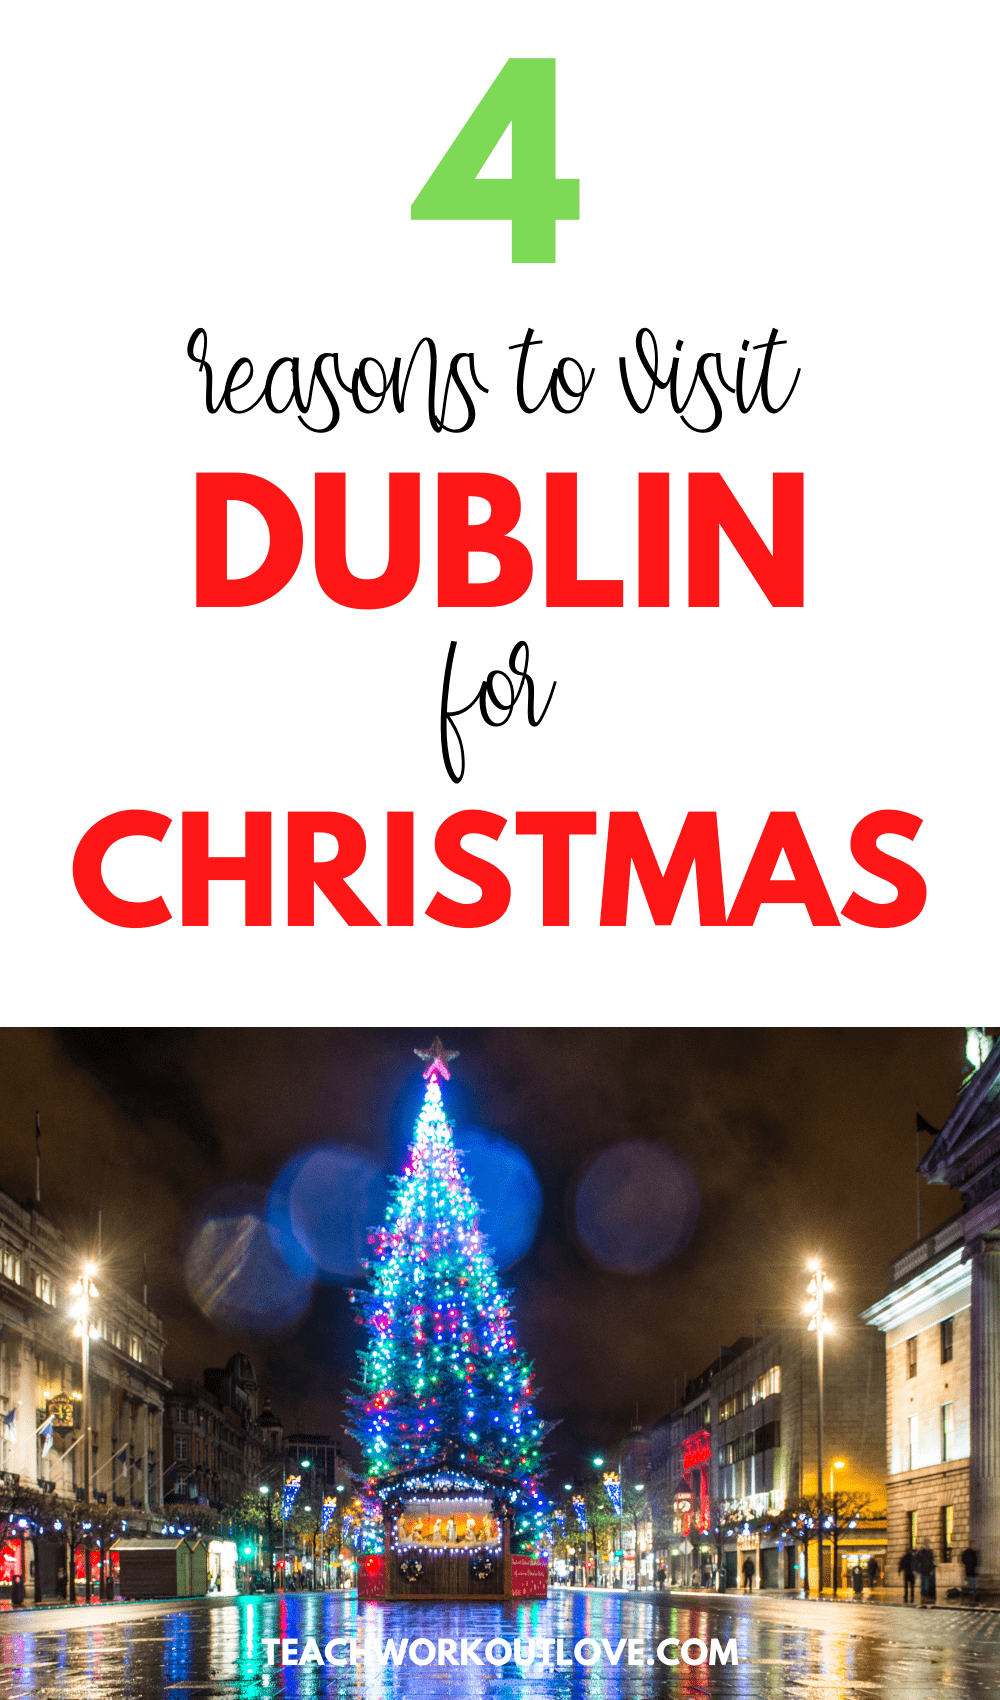 What makes Dublin one of the best of choices when it comes to spending Christmas? Figure it out down below and consider changing your Christmas plans!